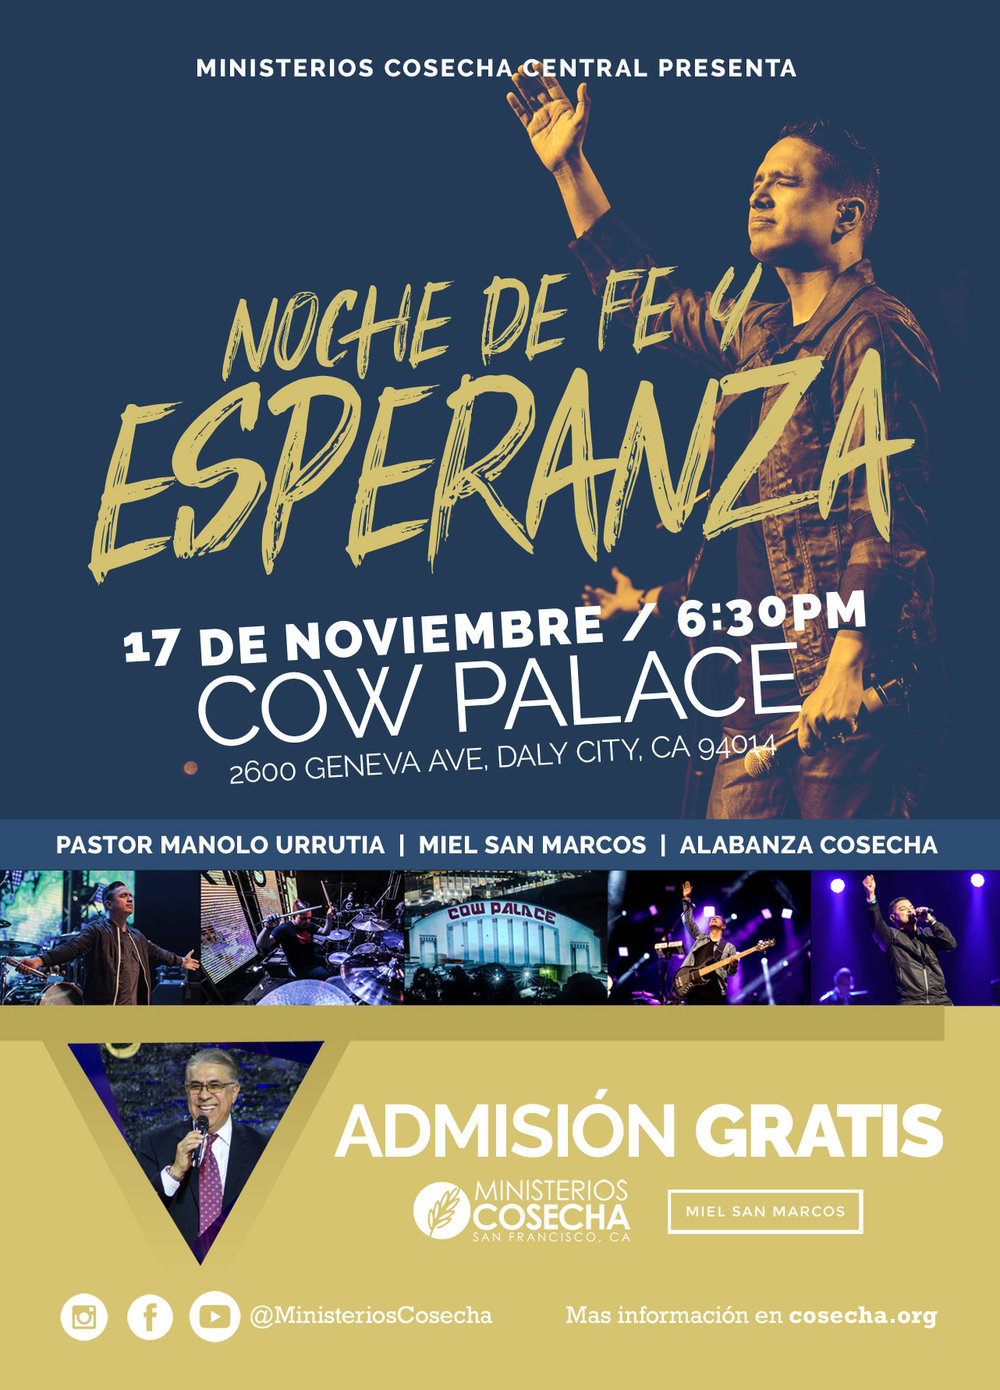 Ministerios Cosecha Cow Palace